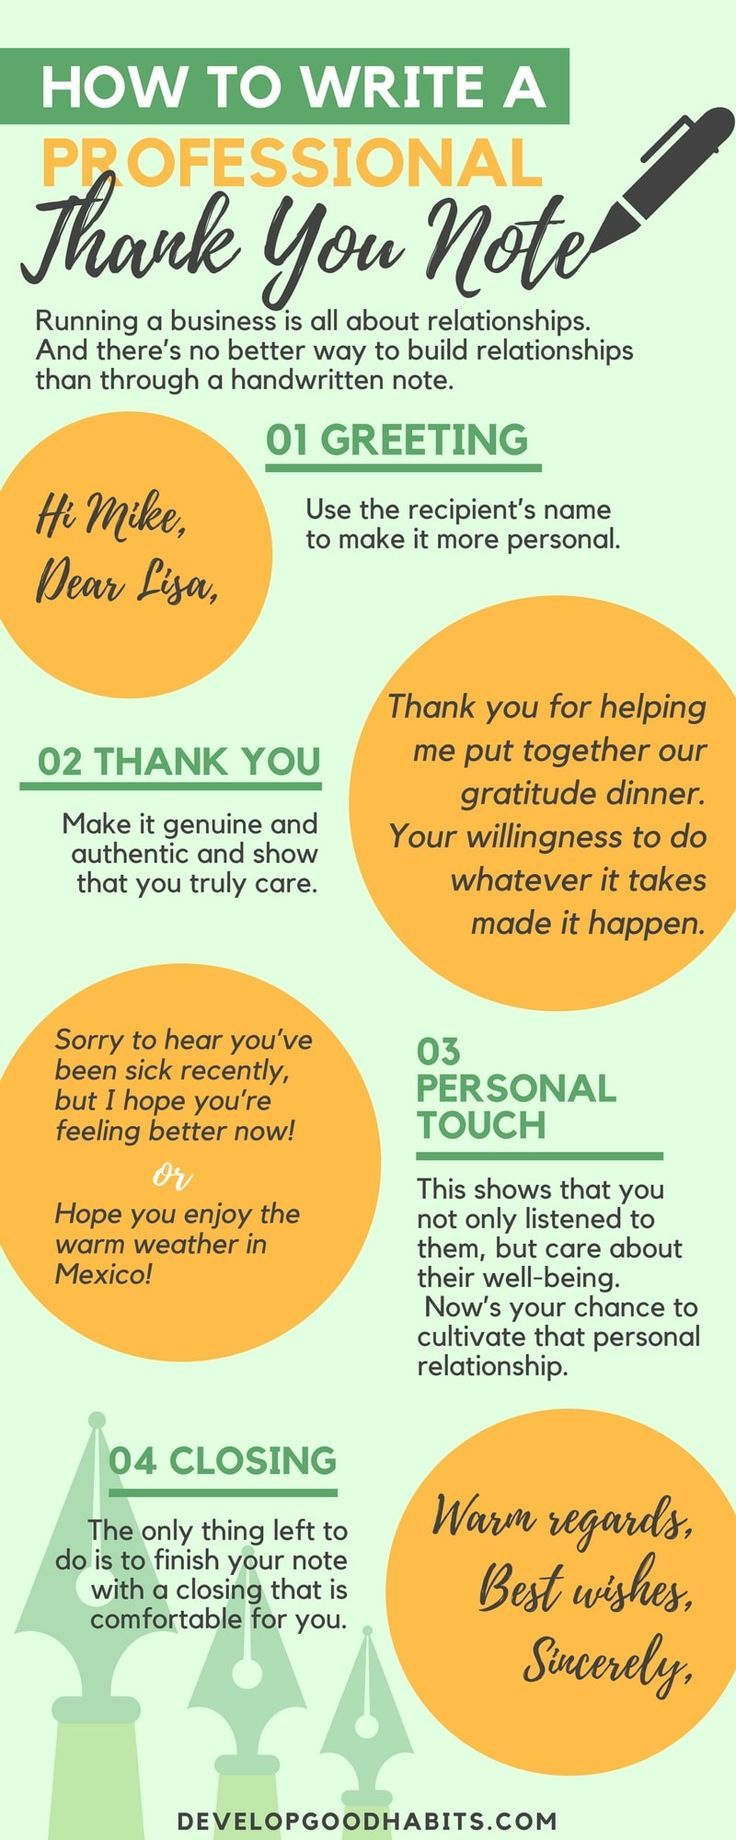 Learn how to word a professional thank you note to send to your business connections.